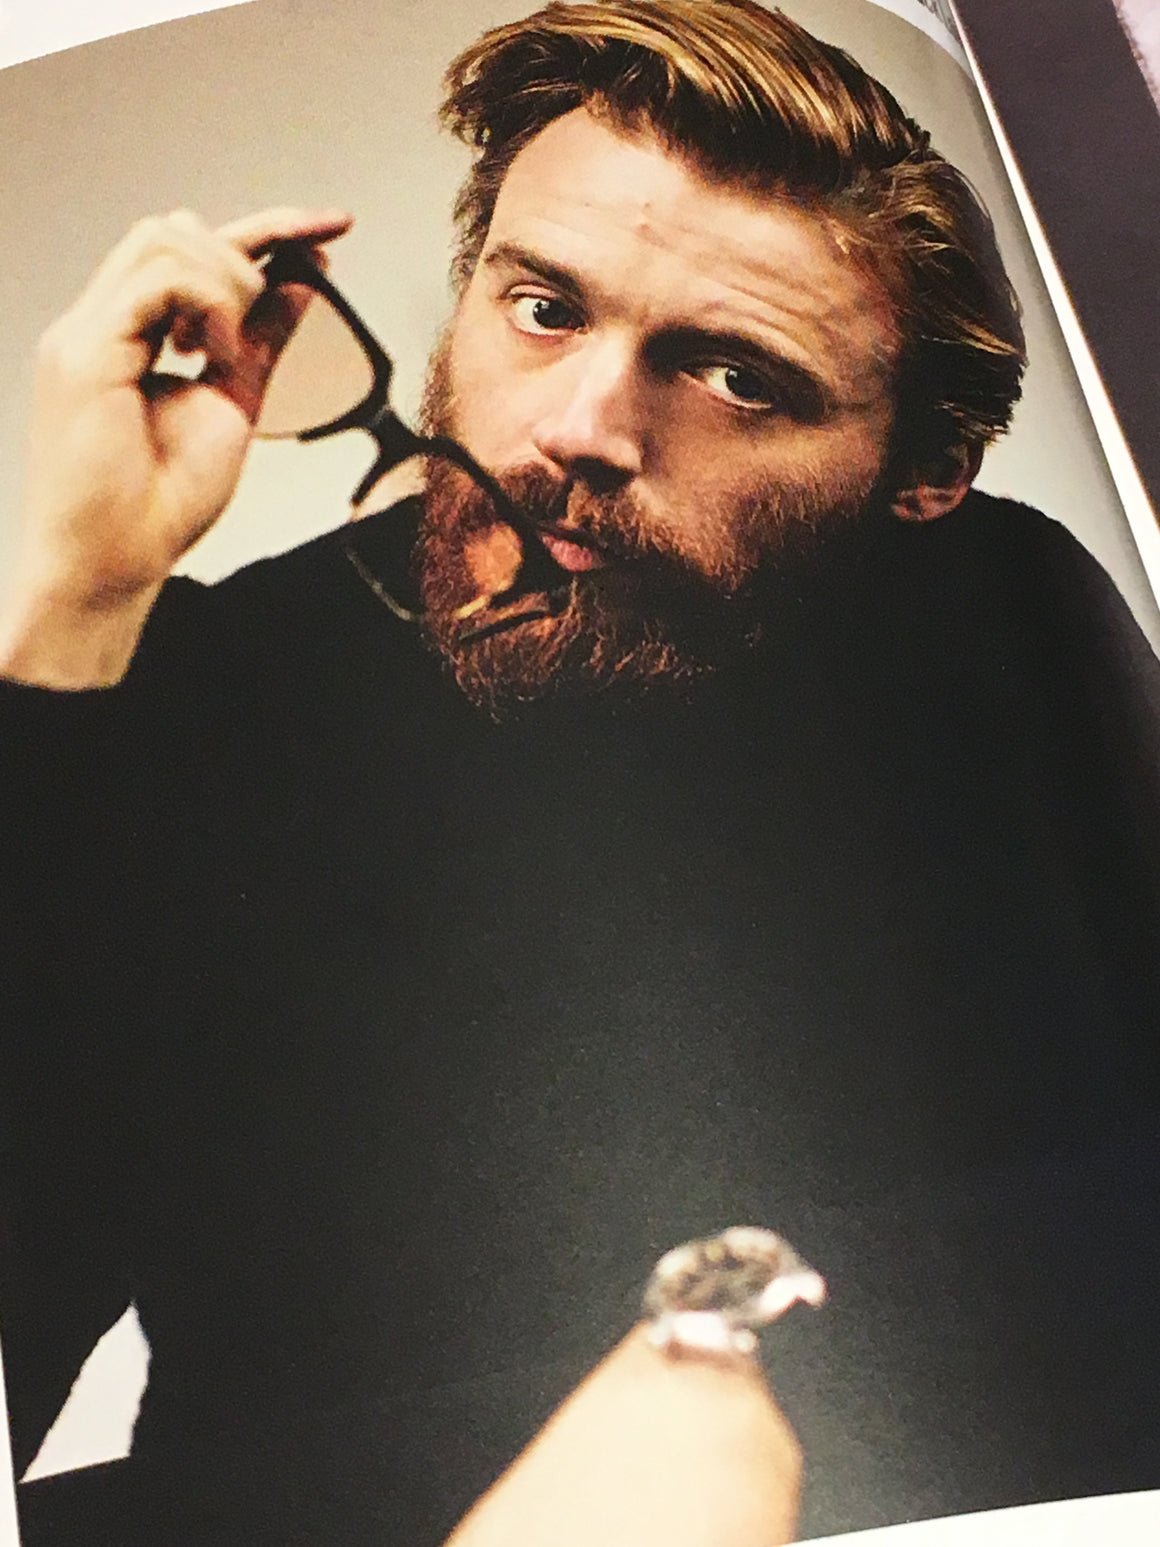 The Jackal Magazine Feb/March 2019: Jack Lowden